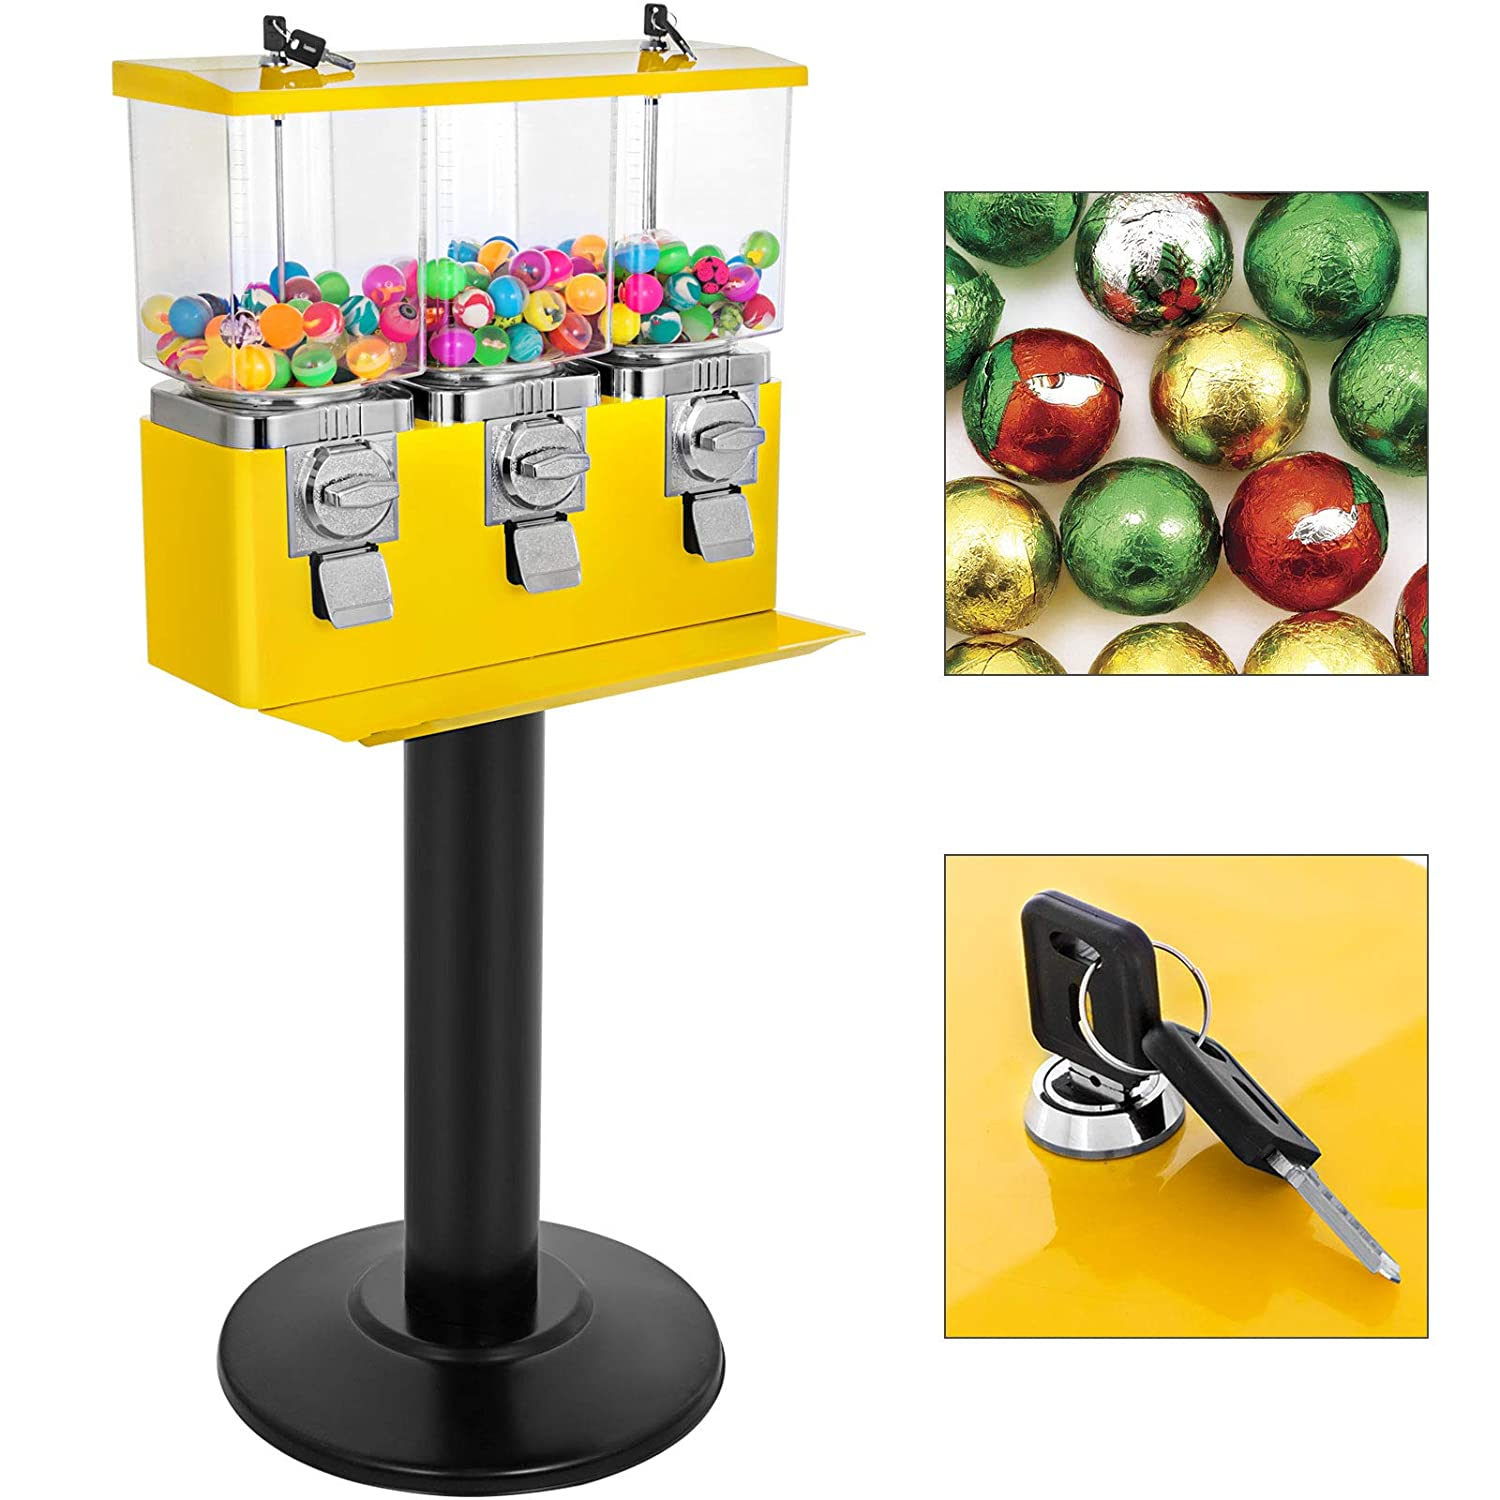 VBENLEM Triple Head Candy Vending Machine 3 Containers with Stand Gumball Vending Machine Adjustable Candy Outlet Size 1 Adjustable Candy Pod & 2 Gumball Pod Gumball Bank